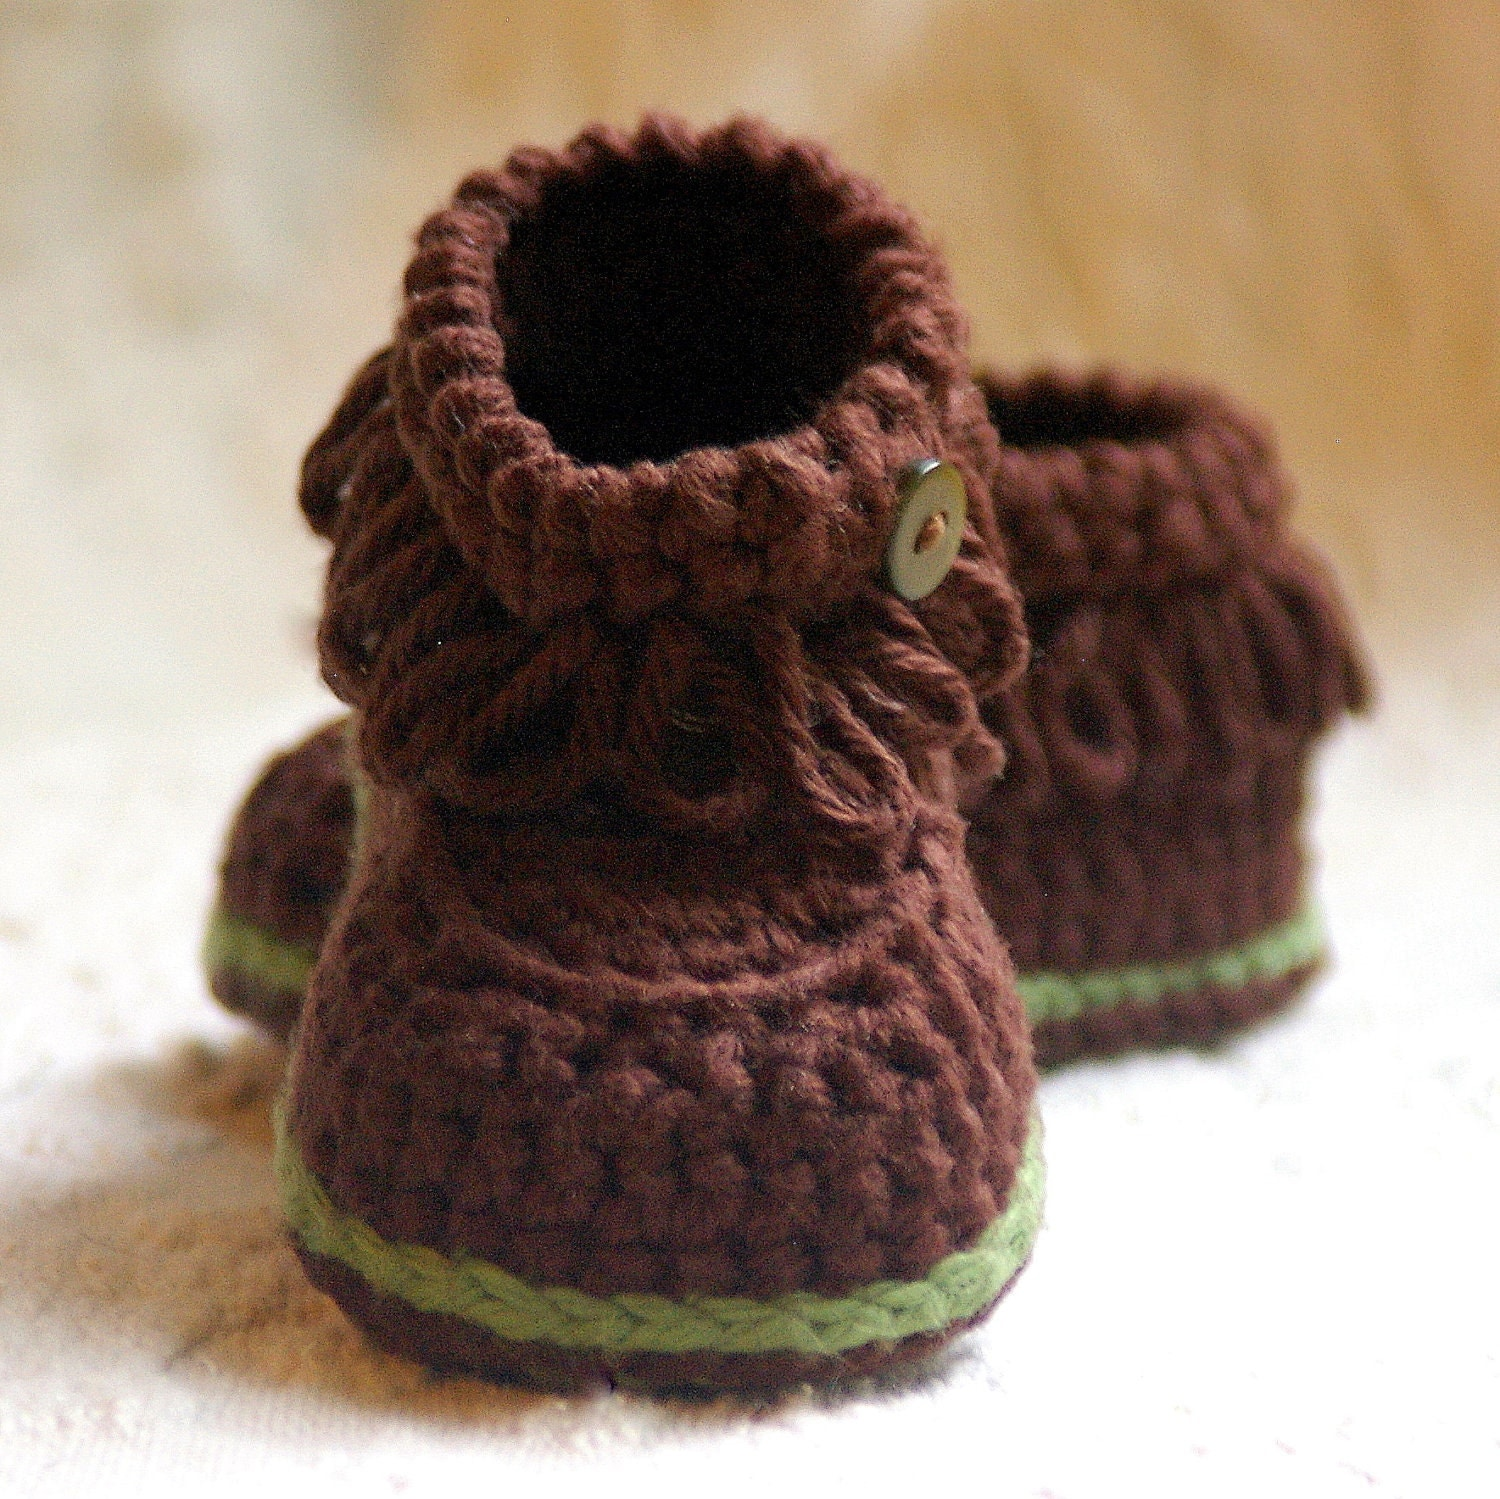 Crochet Baby Booties Pattern With Pictures : Crochet Pattern Fringe Baby Booties Pattern by ...